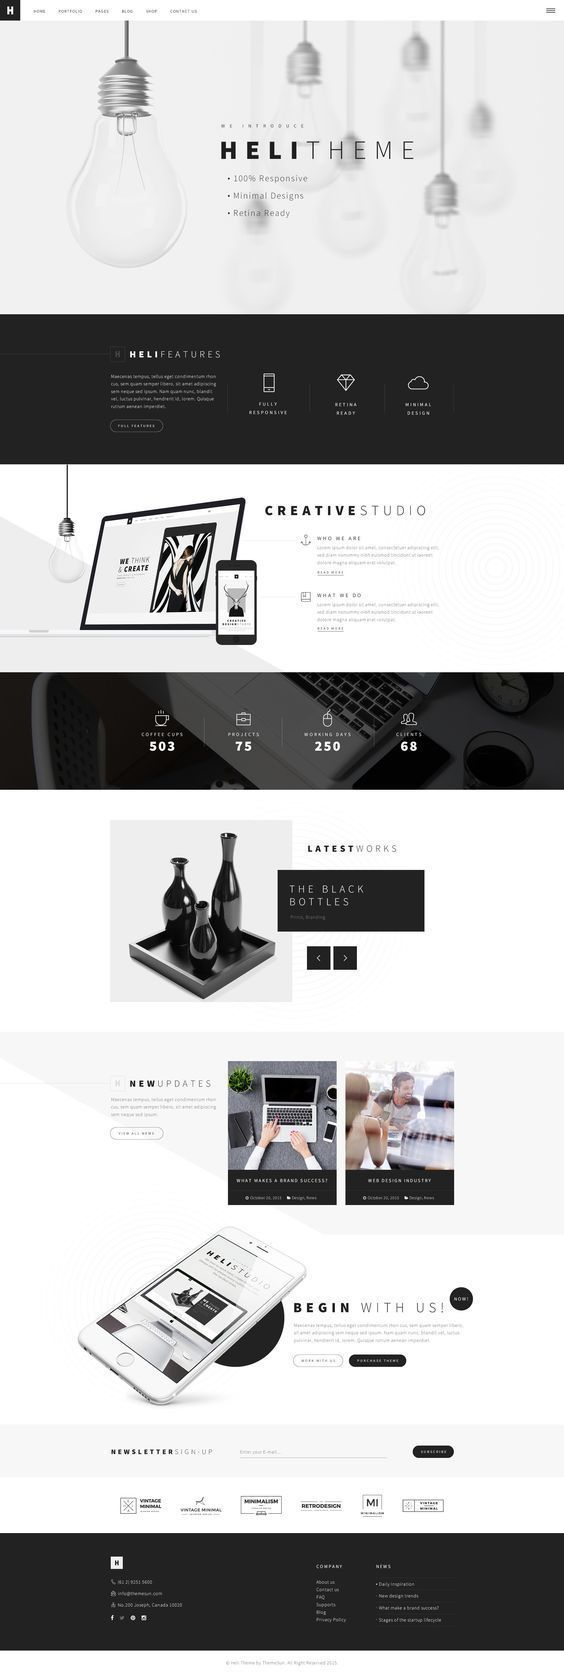 Here's another web design inspiration just for you!